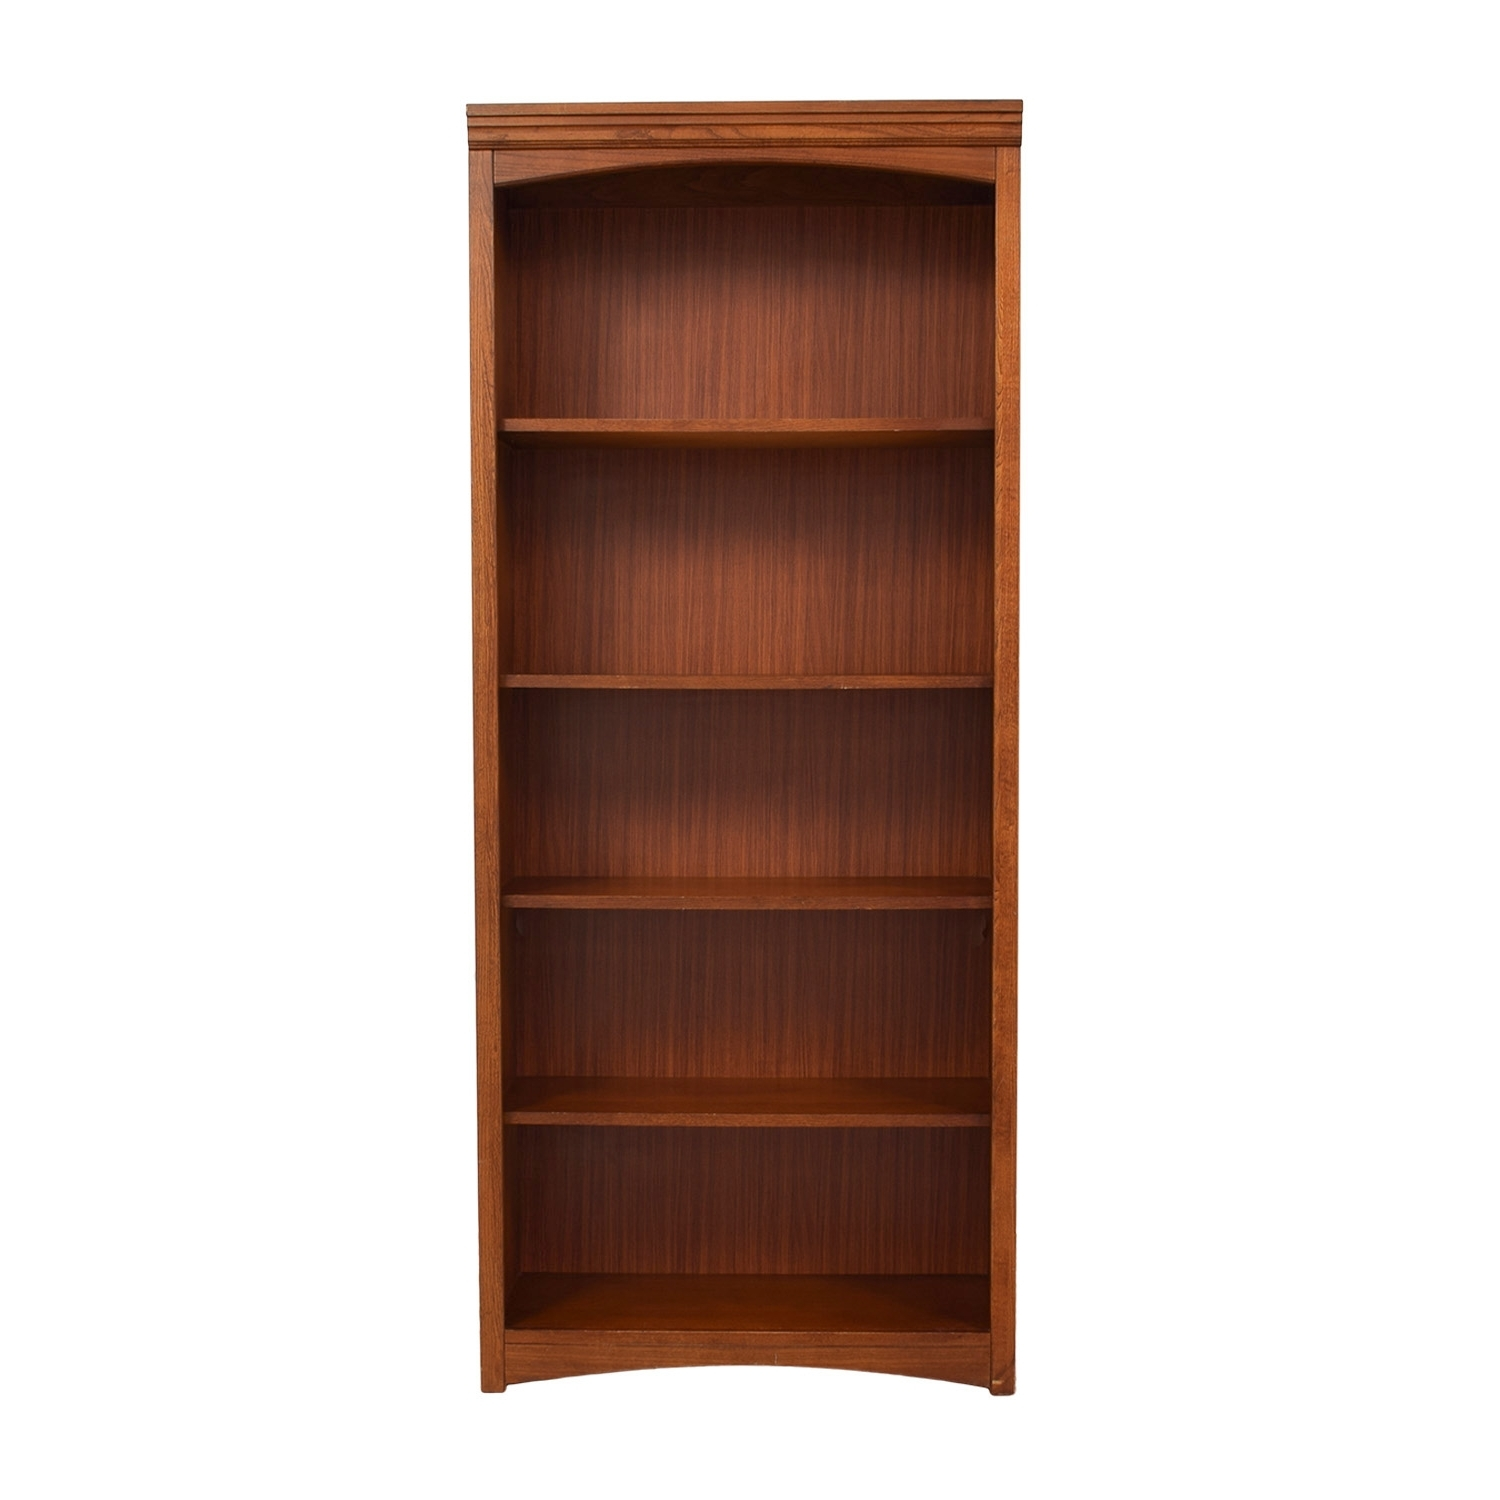 [%68% Off – Bassett Bassett Wooden Bookshelf / Storage Pertaining To Most Up To Date Wooden Bookcases|Wooden Bookcases In 2018 68% Off – Bassett Bassett Wooden Bookshelf / Storage|Well Known Wooden Bookcases With 68% Off – Bassett Bassett Wooden Bookshelf / Storage|Most Current 68% Off – Bassett Bassett Wooden Bookshelf / Storage Throughout Wooden Bookcases%] (View 1 of 15)